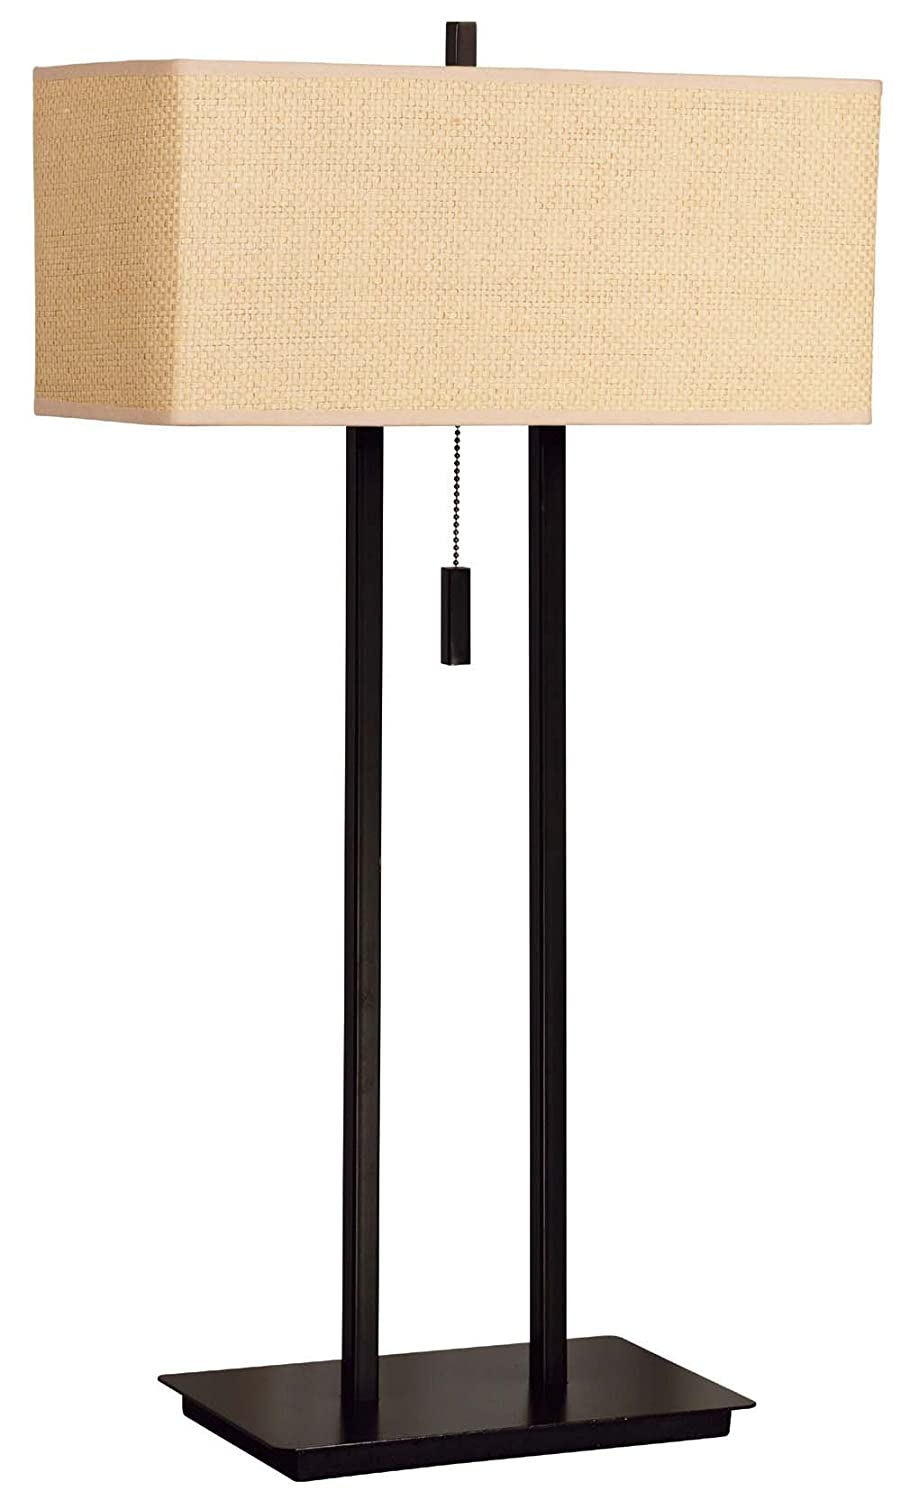 Kenroy Home 30816BRZ Emilo Table Lamp with 16 inch Tan Textured Woven shade, Bronze